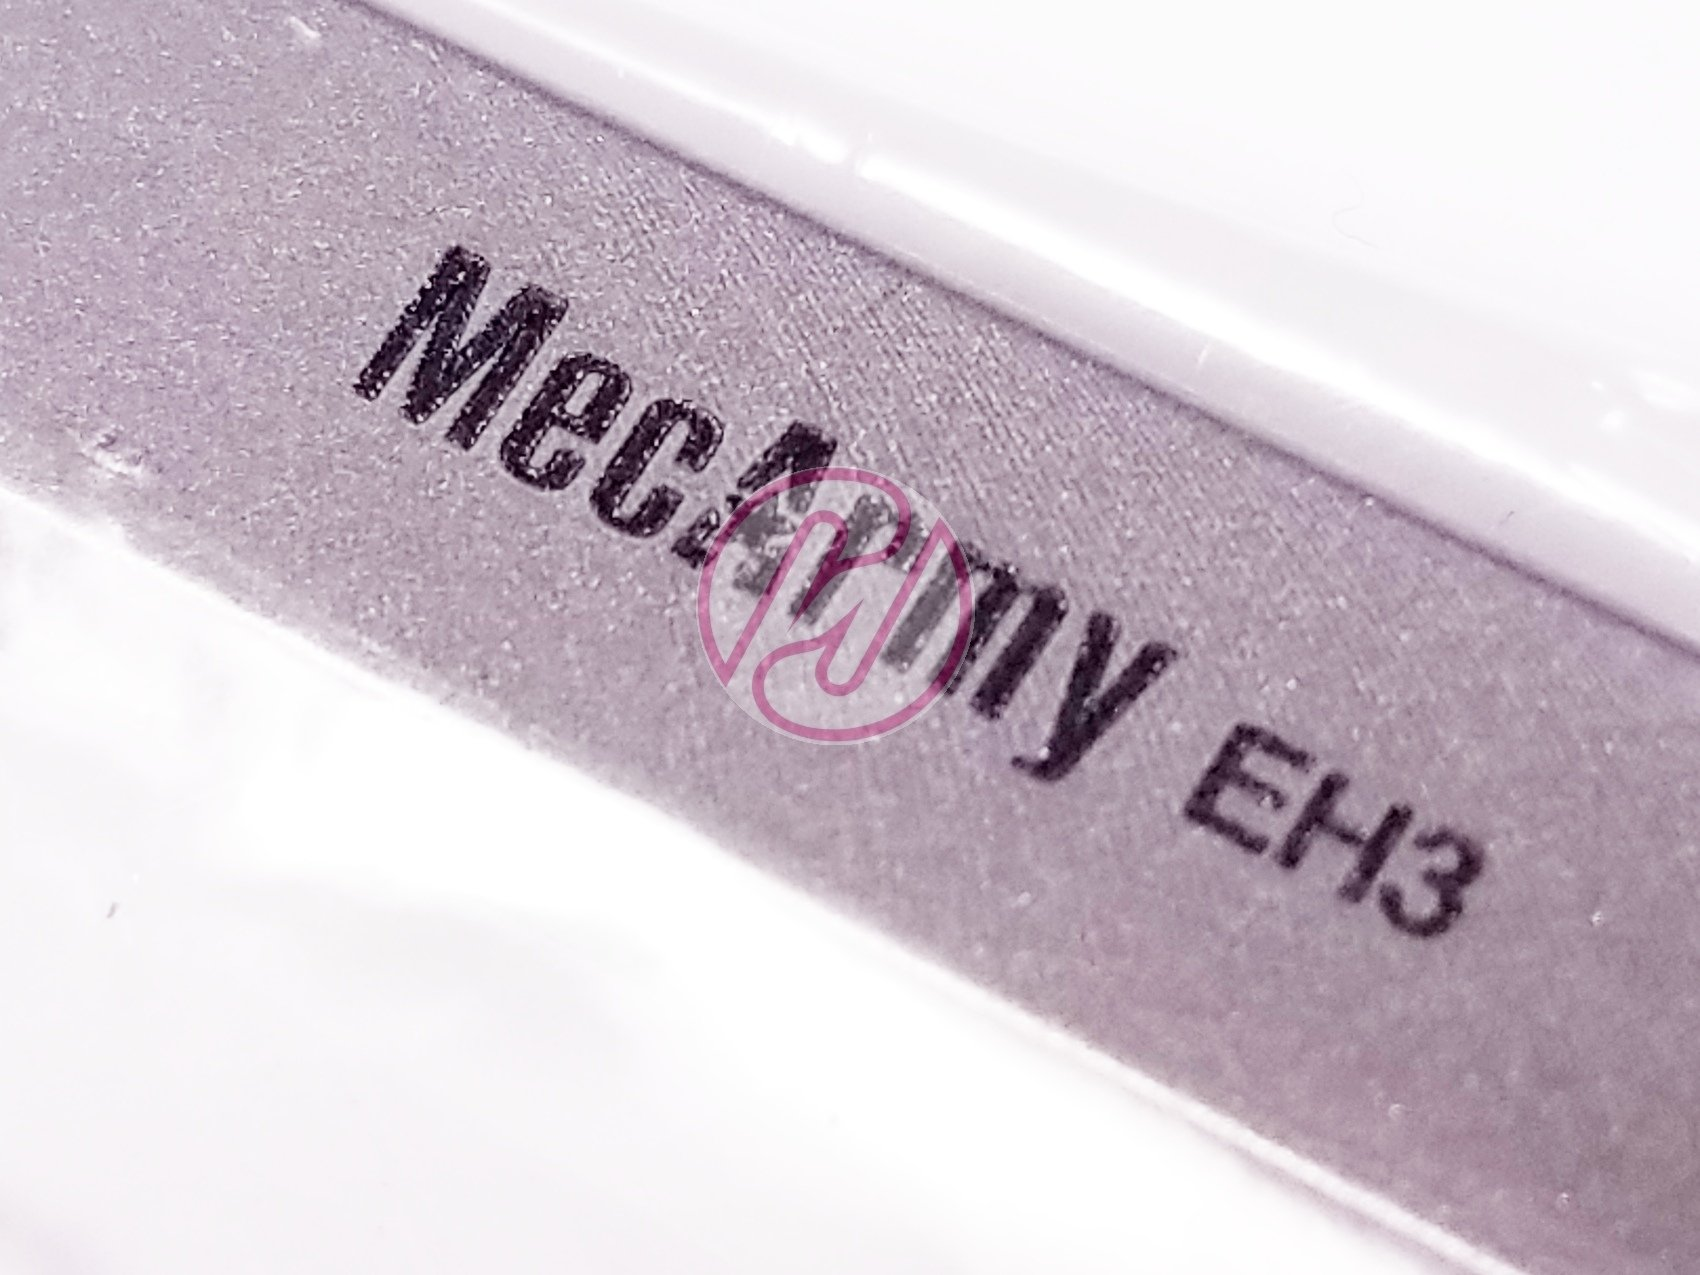 Mecarmy-EH3-Titanium-Copper-Pry-Bar-Wrench-Bottle-Opener-Carabiner thumbnail 7